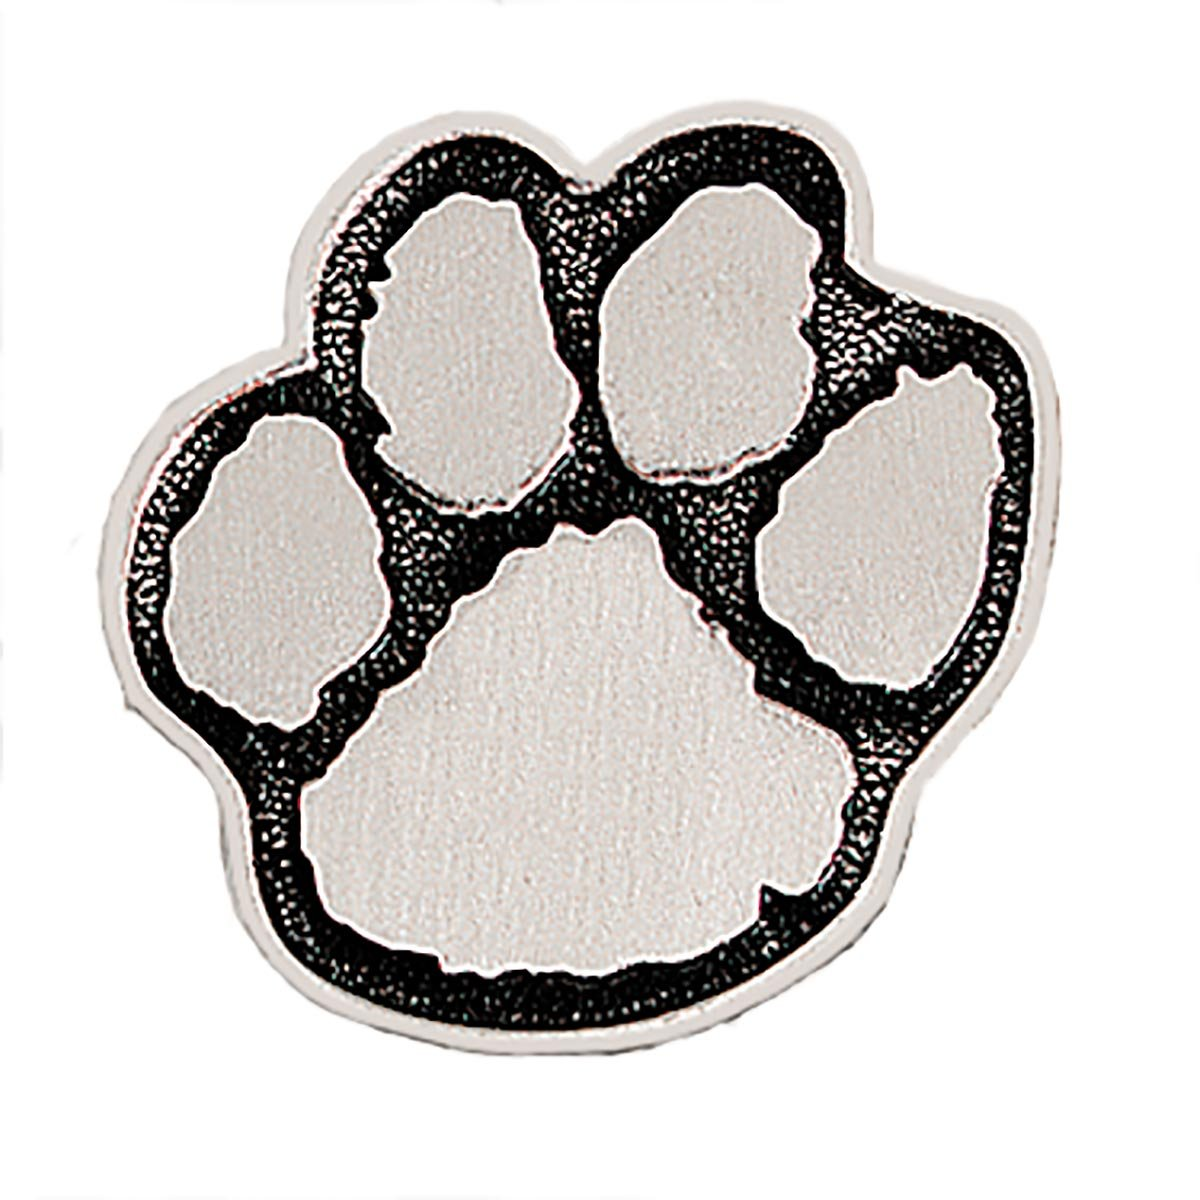 Pewter with Black Outline Paw-Shaped Award Lapel Pins, 12 Pins